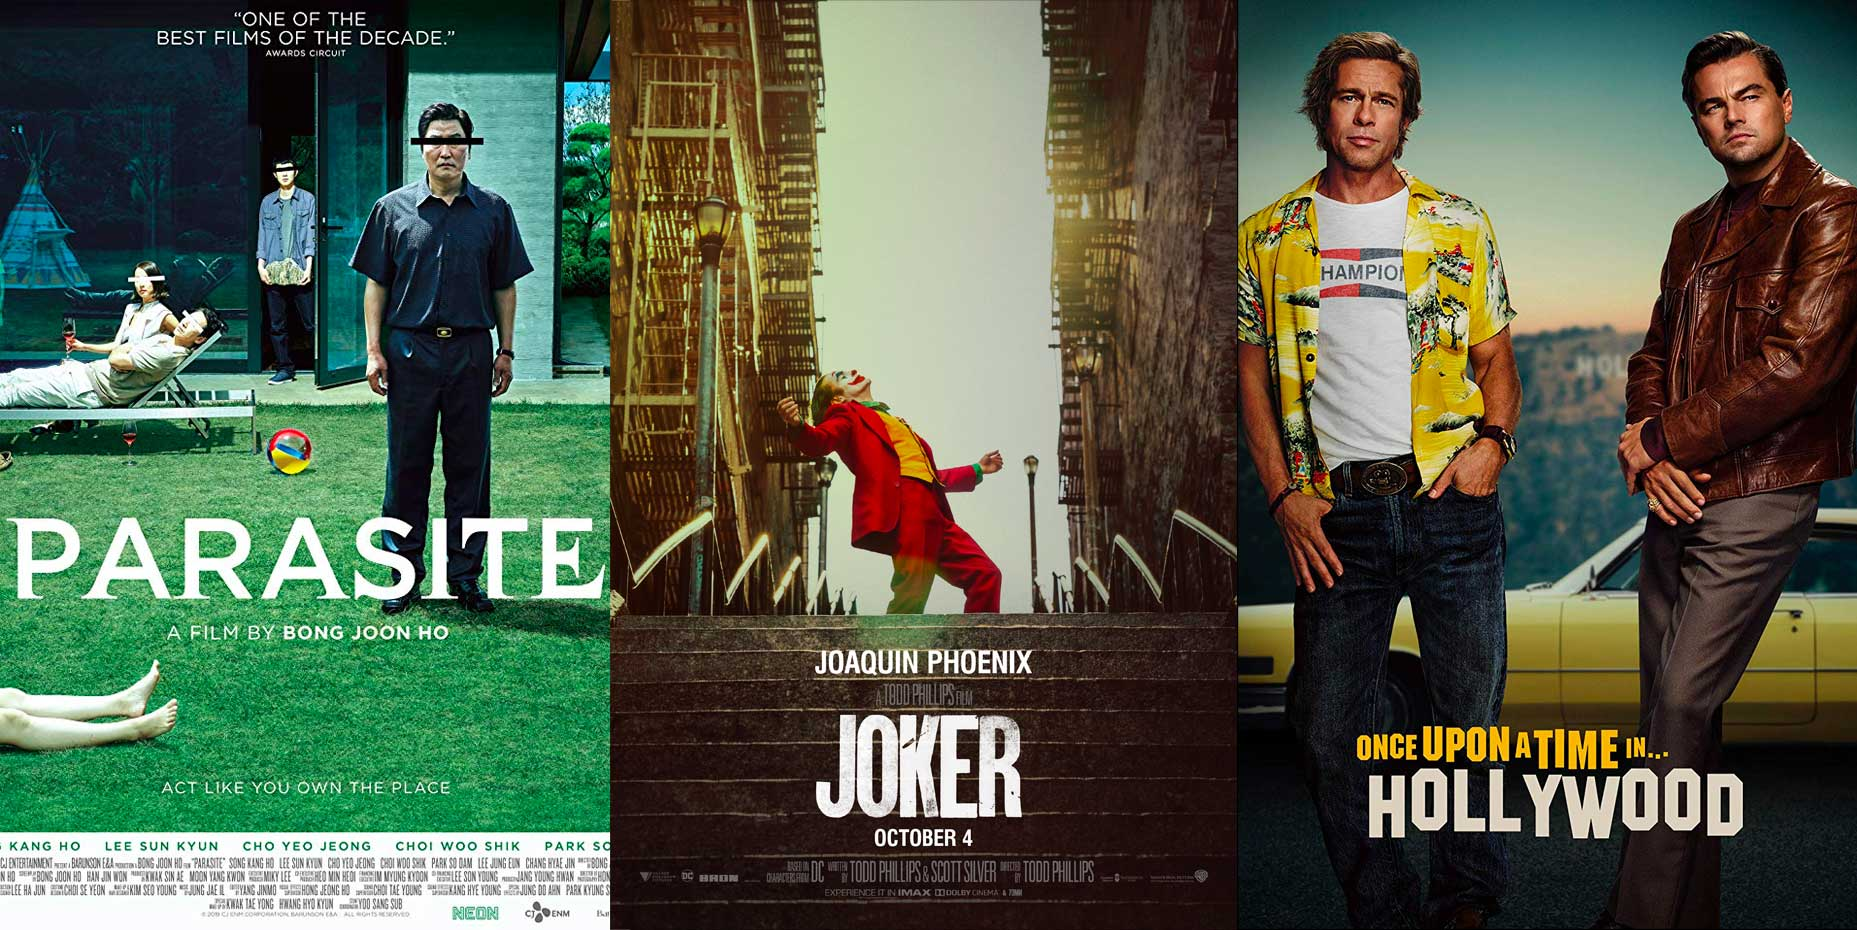 2020-oscar-best-picture-nominees